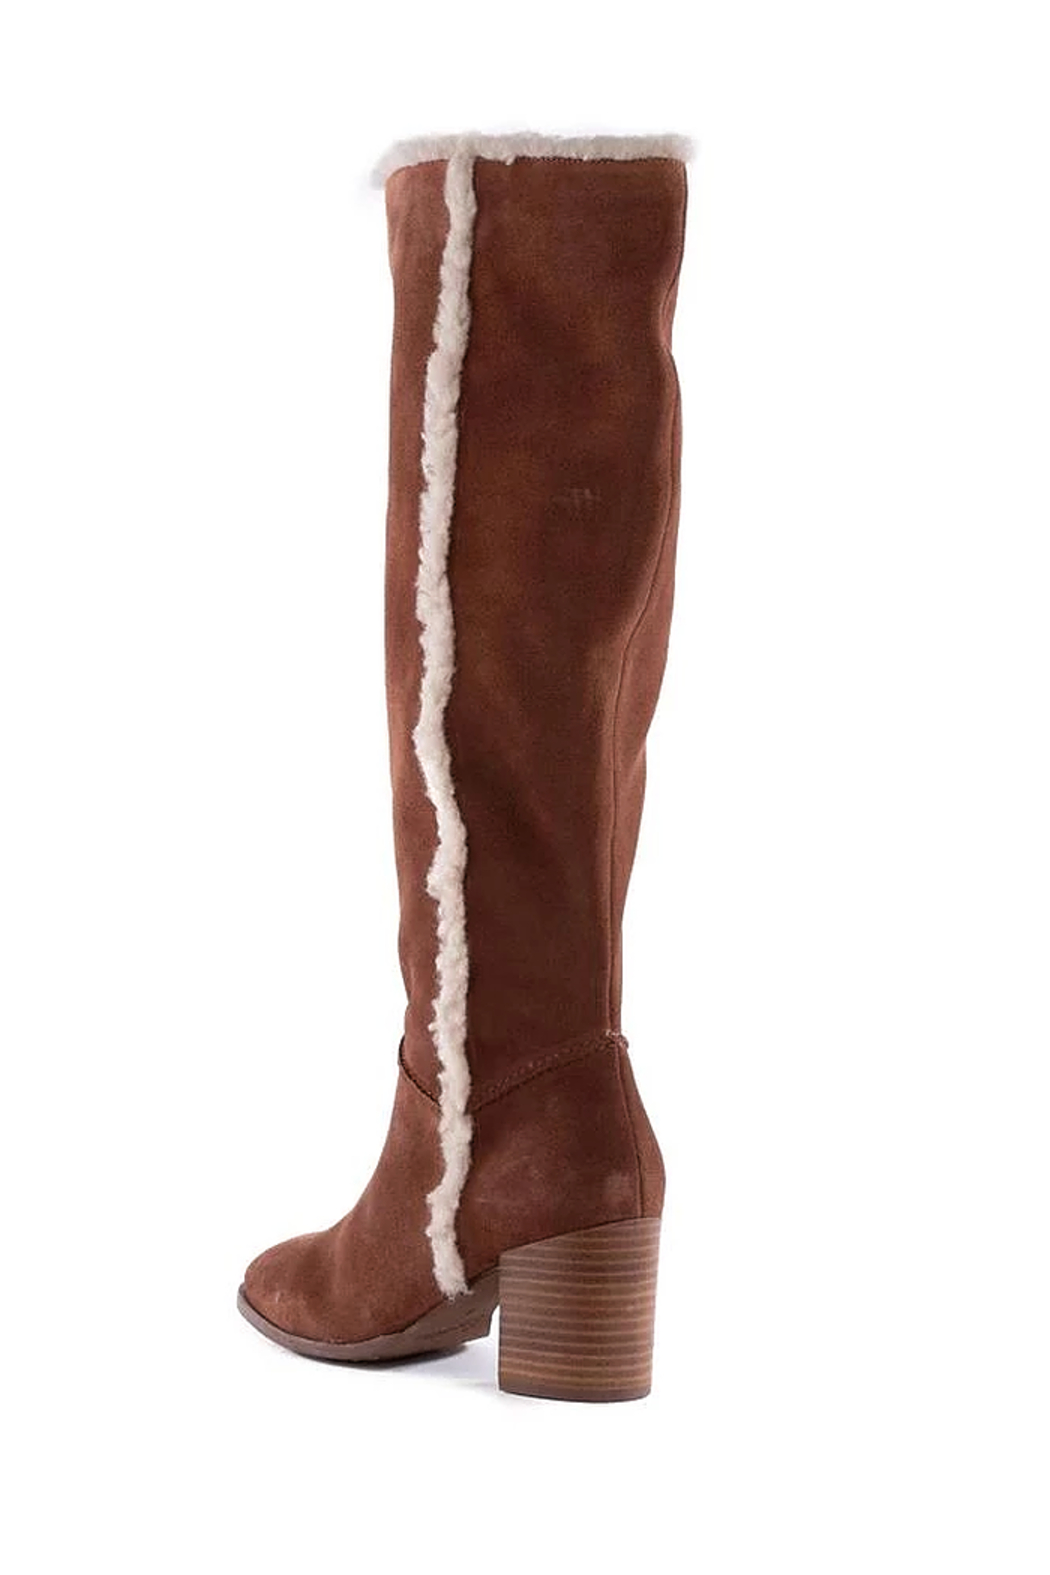 Seychelles Face to Face Shearling Tall Boot - Side Cropped Image